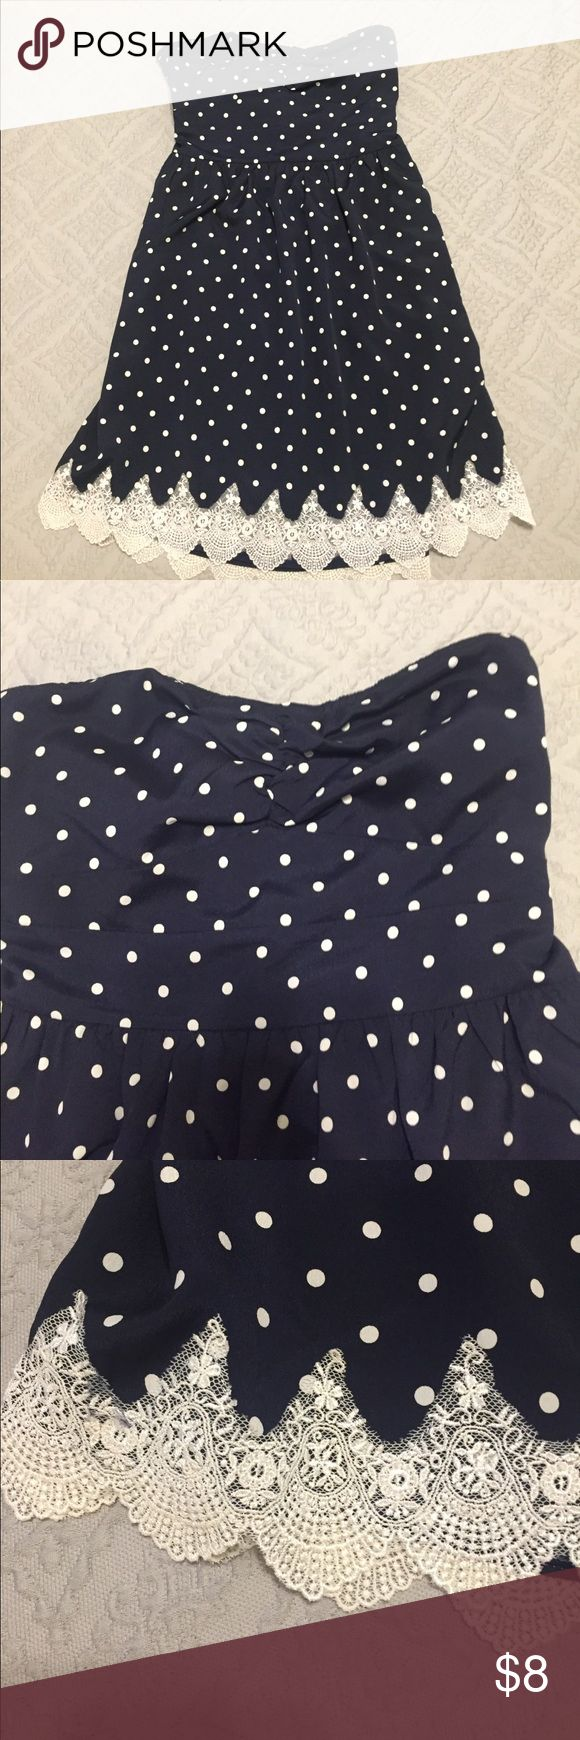 Polka dot summer dress! Such a cute dress! Navy with white polka dots, lace along the bottom, and ties in a bow in back! Size M but would better fit a small. Dresses